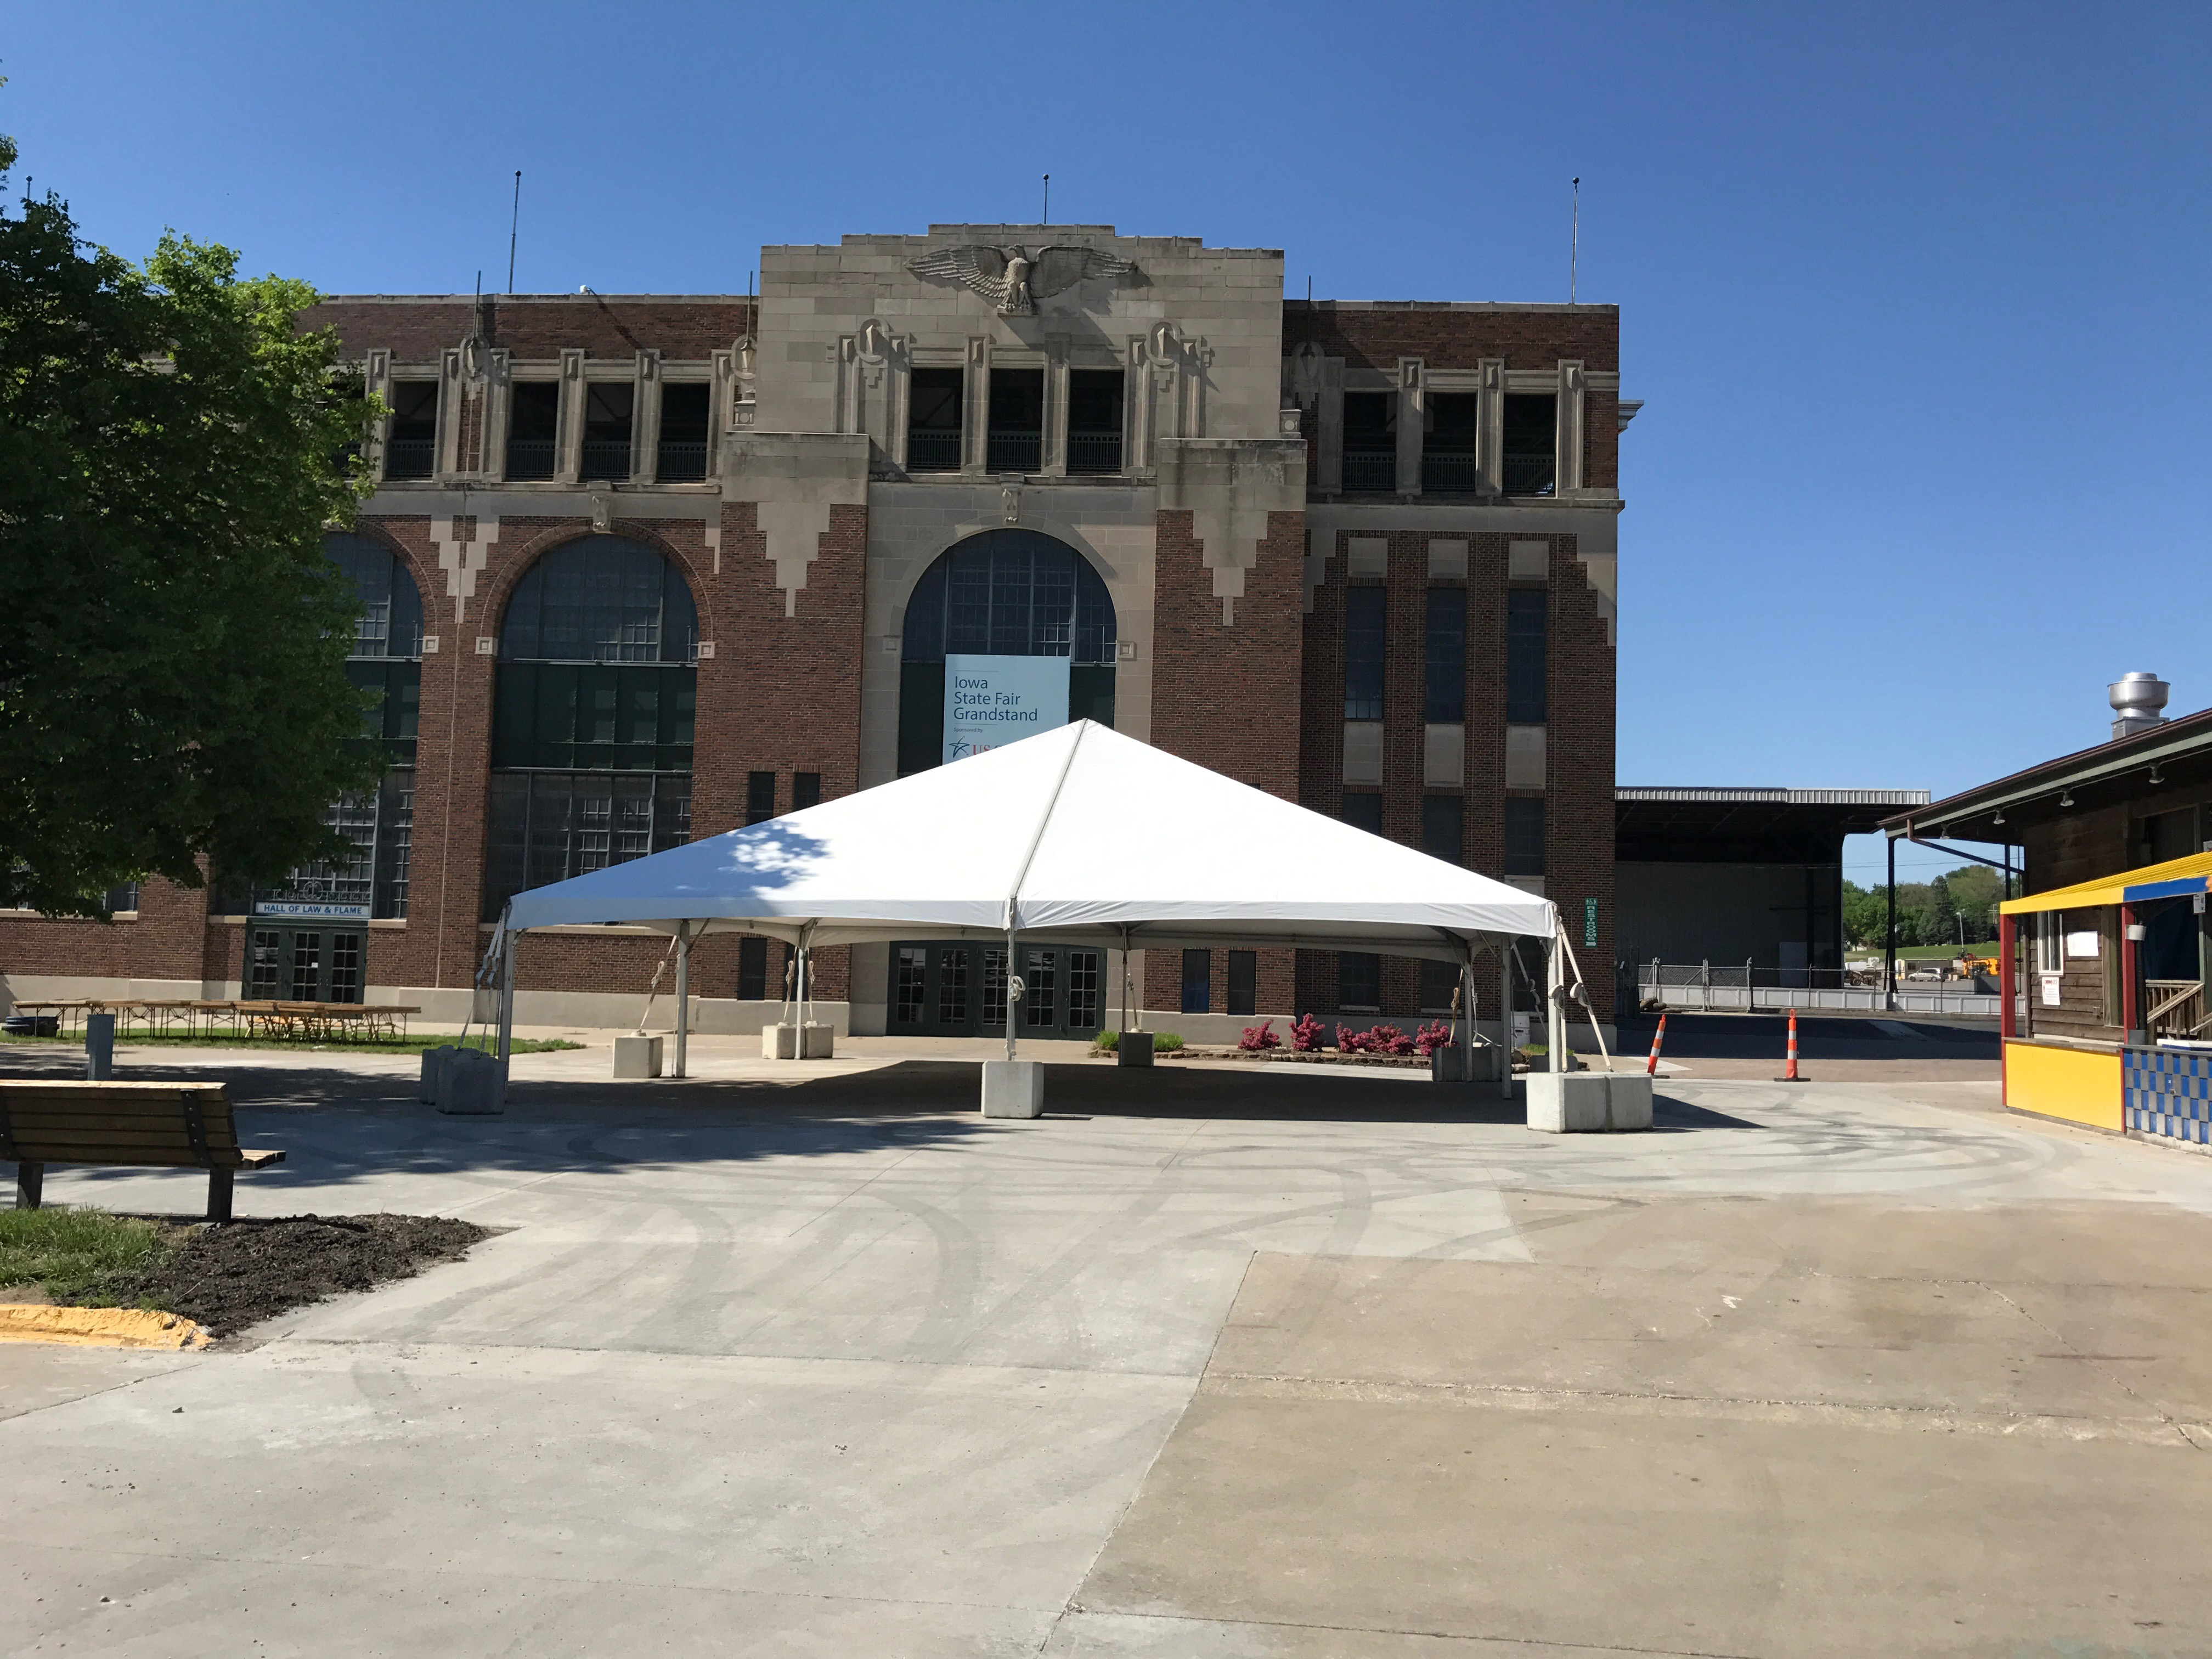 40′ x 40′ event tent with blocks for JDRF One Walk in Des Moines 2017